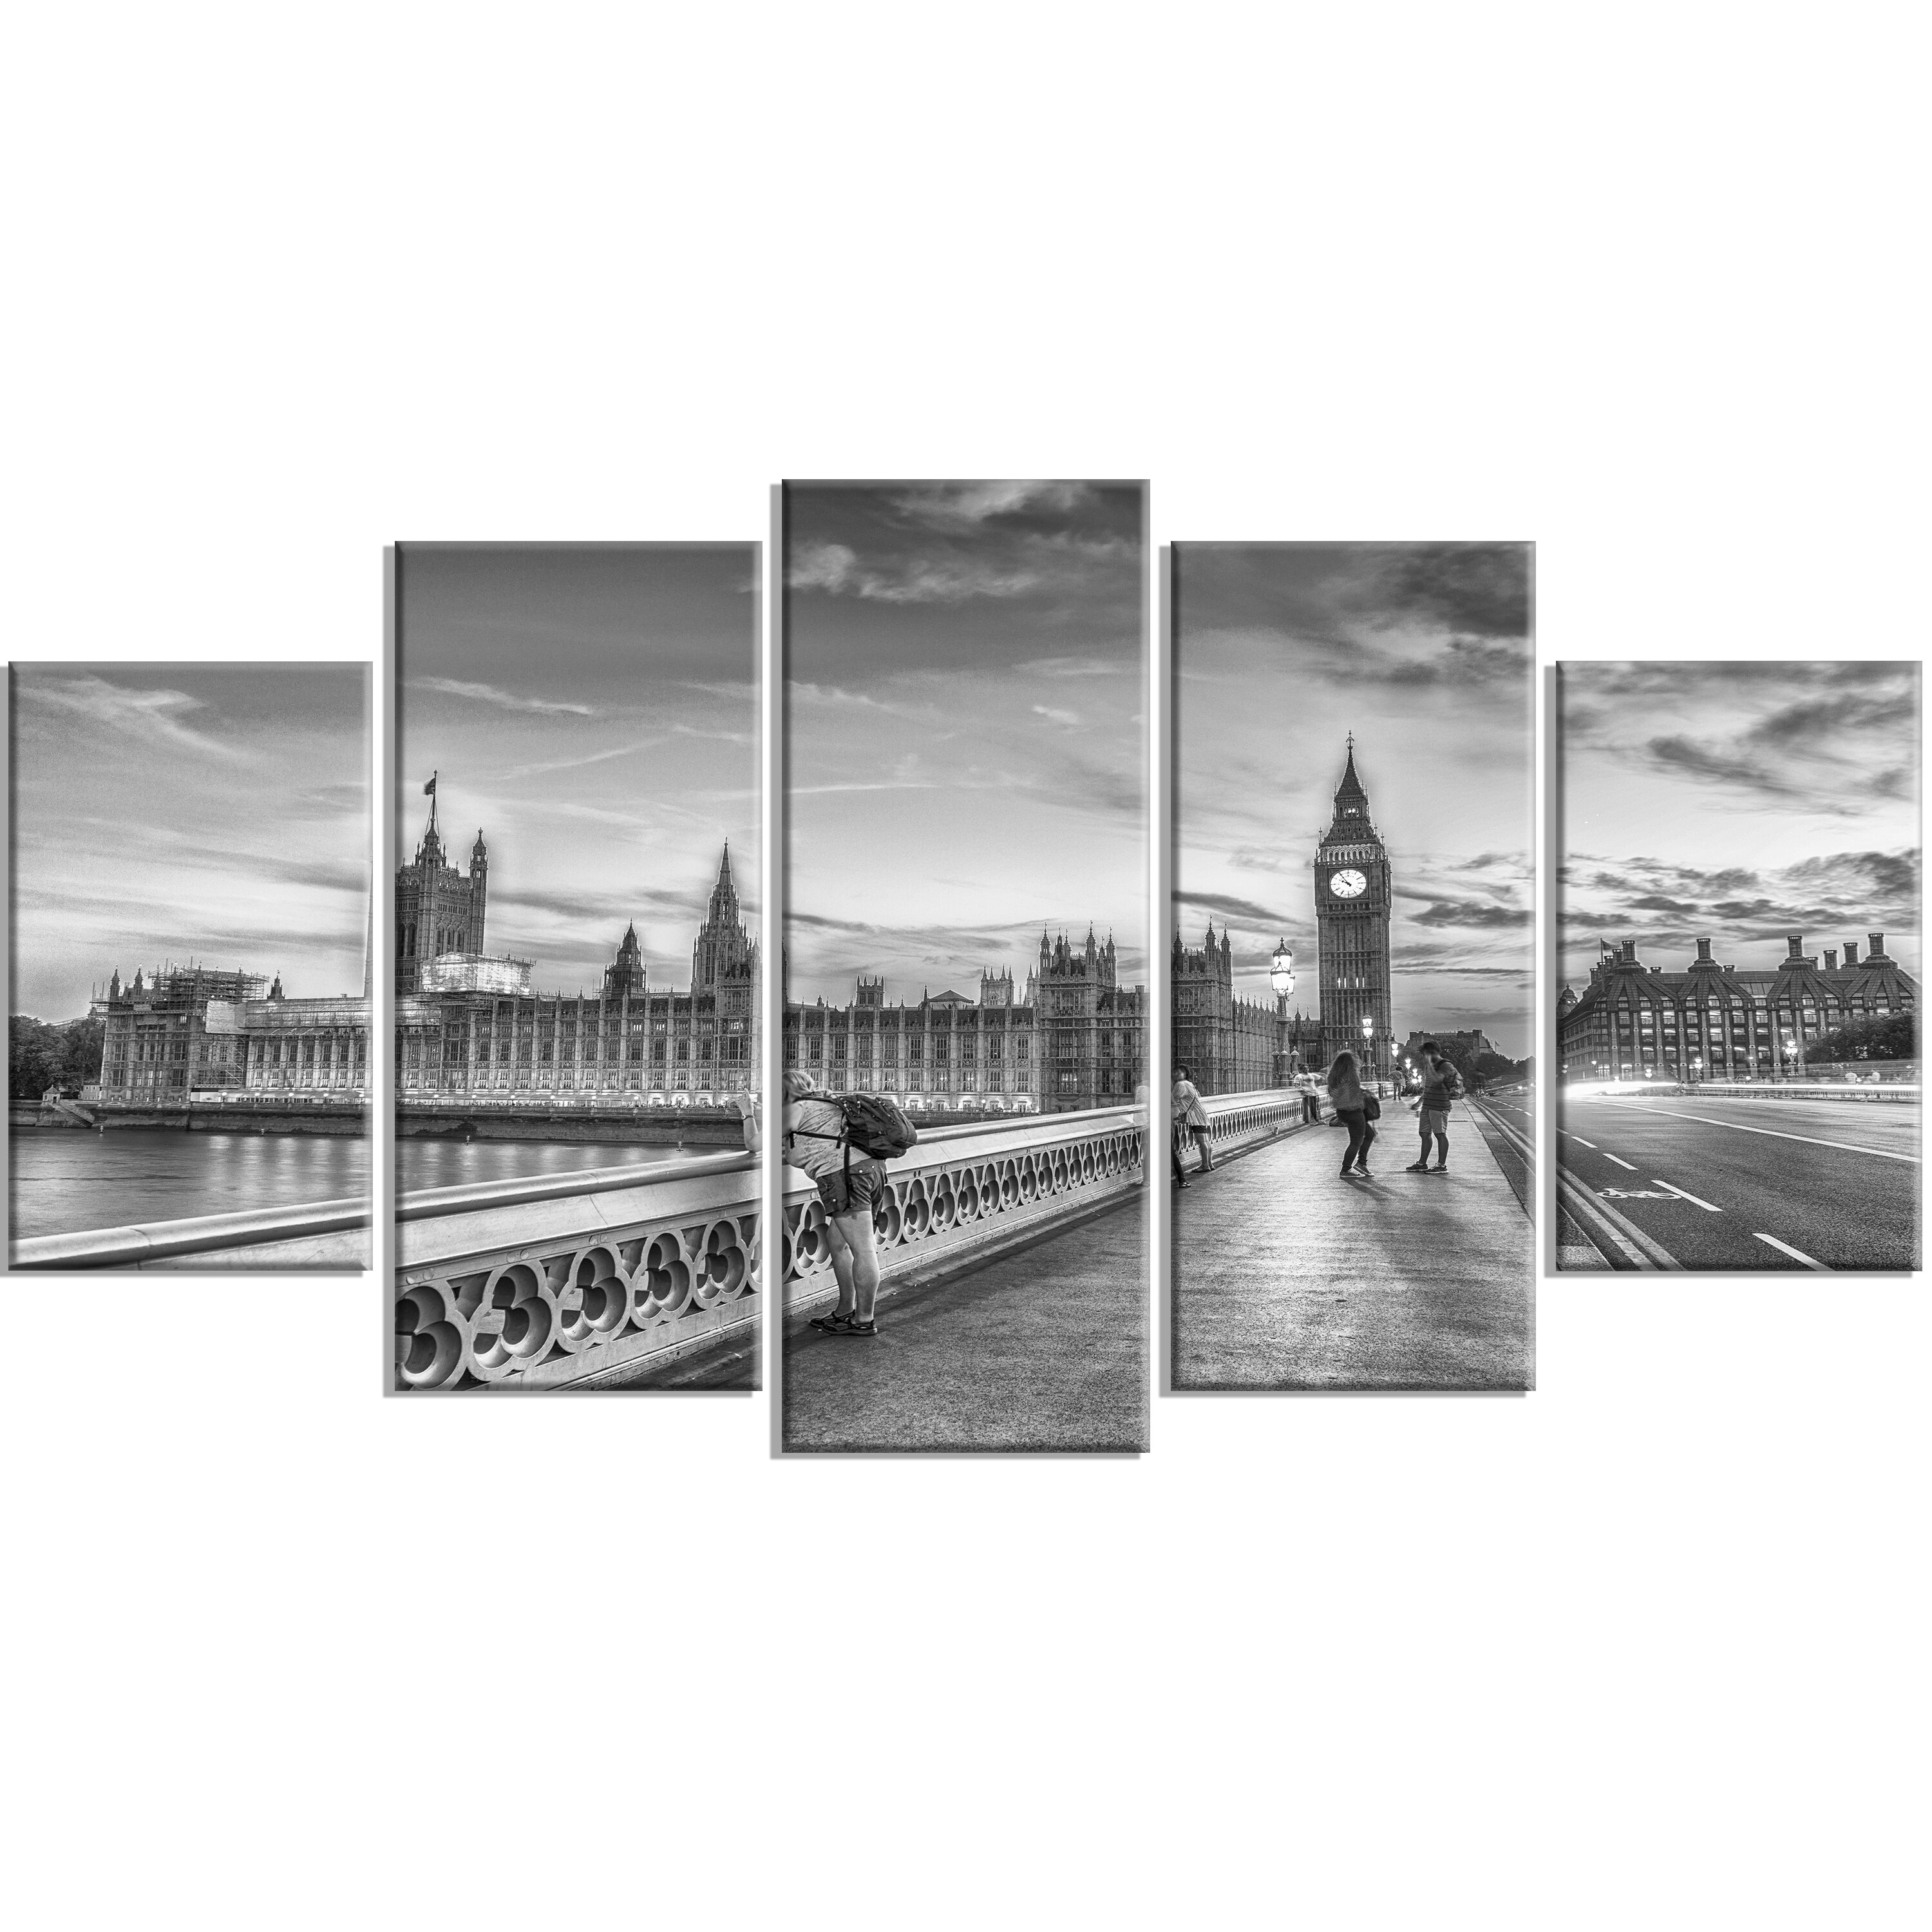 Designart Beautiful Black And White London View 5 Piece Photographic Print On Wrapped Canvas Set Wayfair Ca